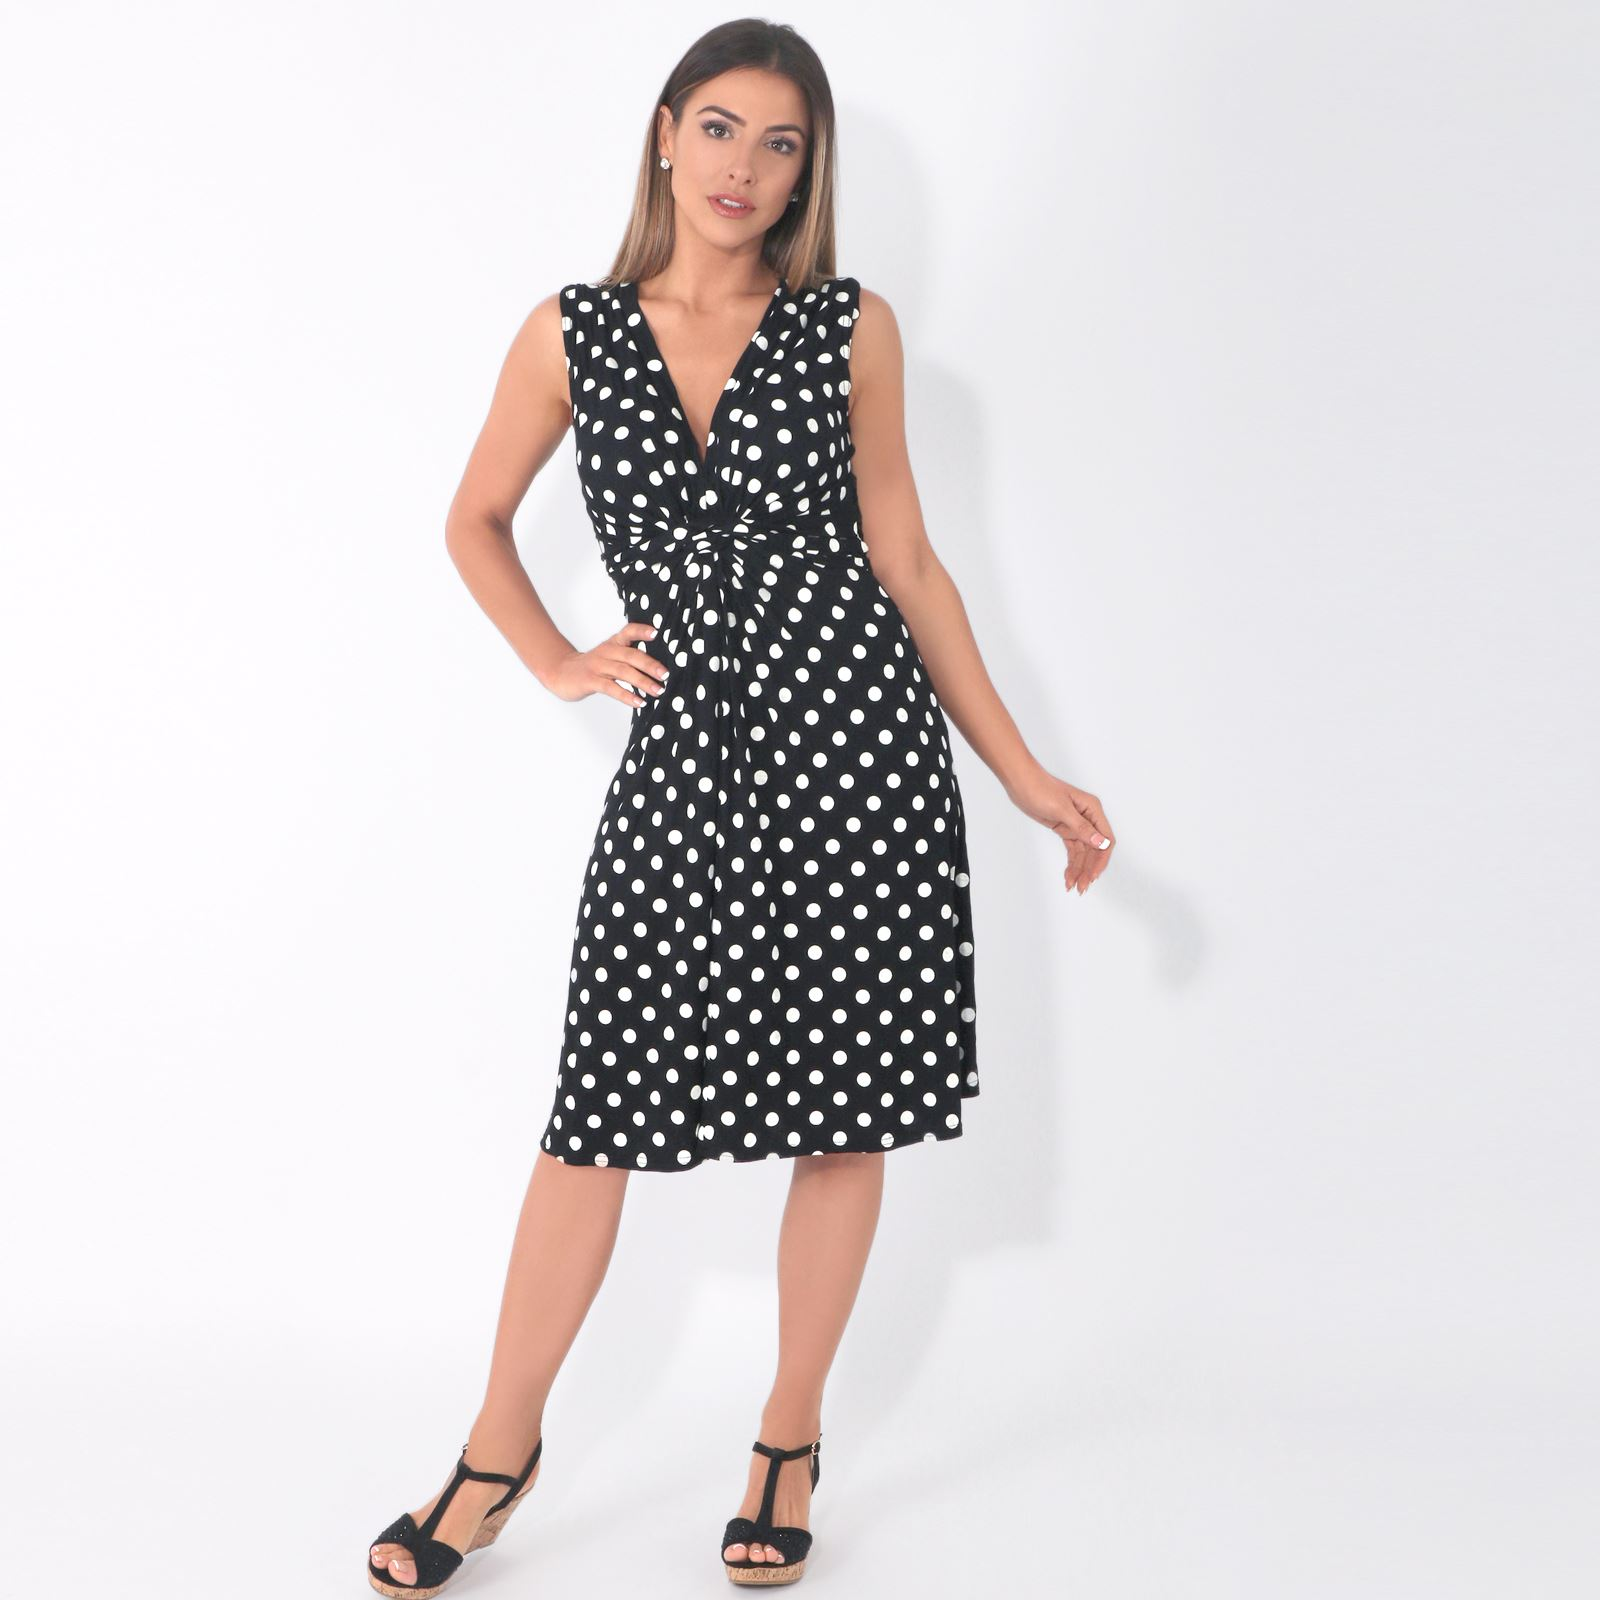 Womens-Polka-Dot-Retro-Dress-Pleated-Skirt-Wrap-Mini-V-Neck-Top-Swing-Party thumbnail 6